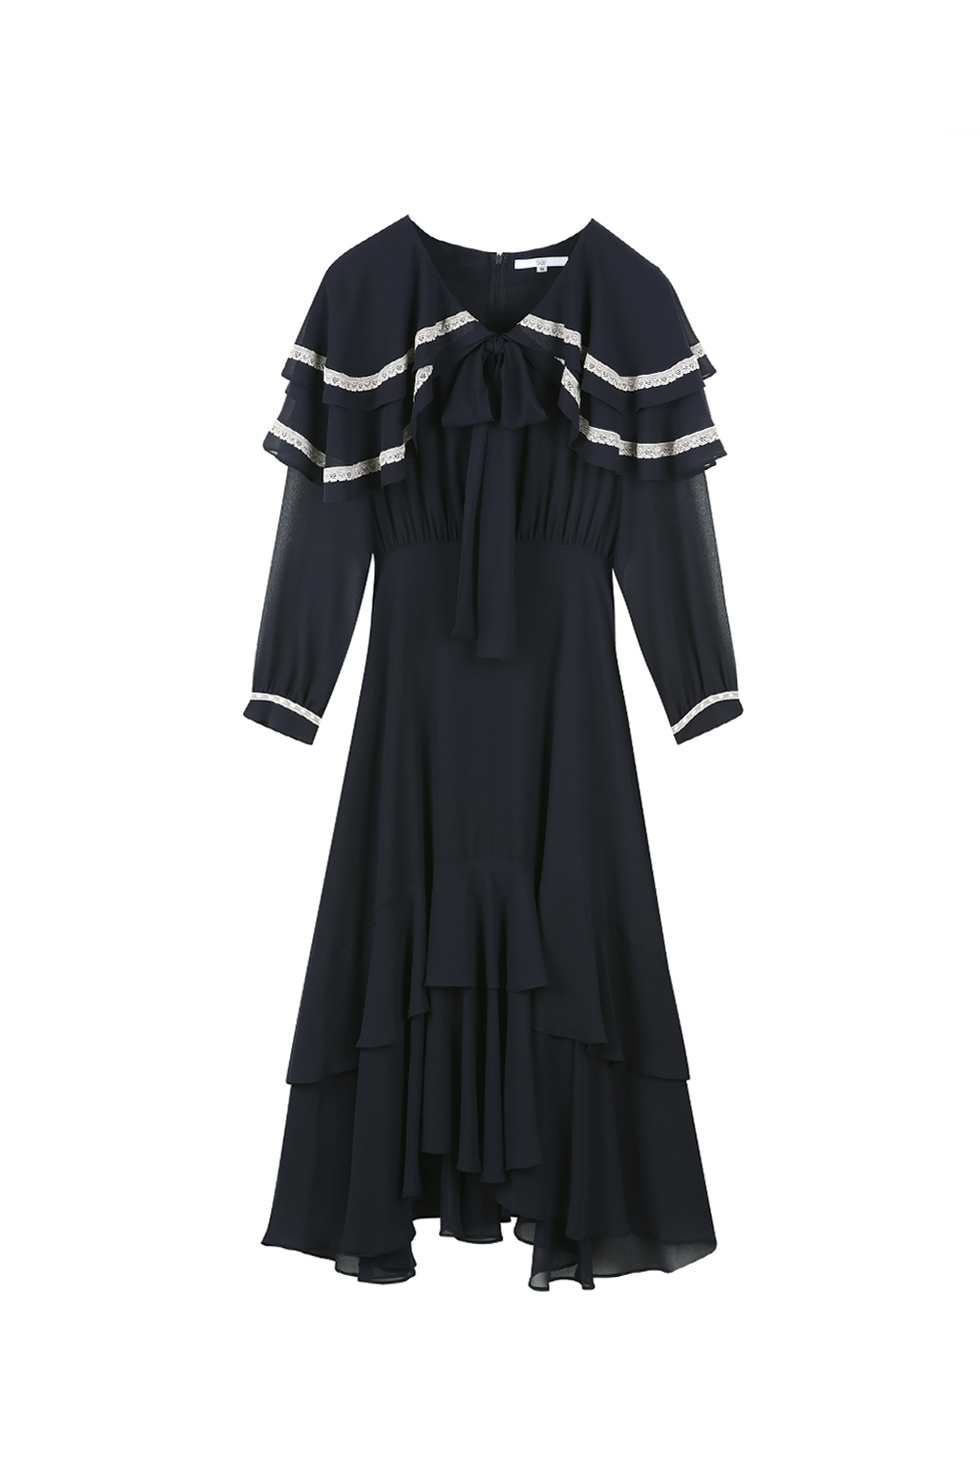 CAPE RUFFLE DRESS - NAVY